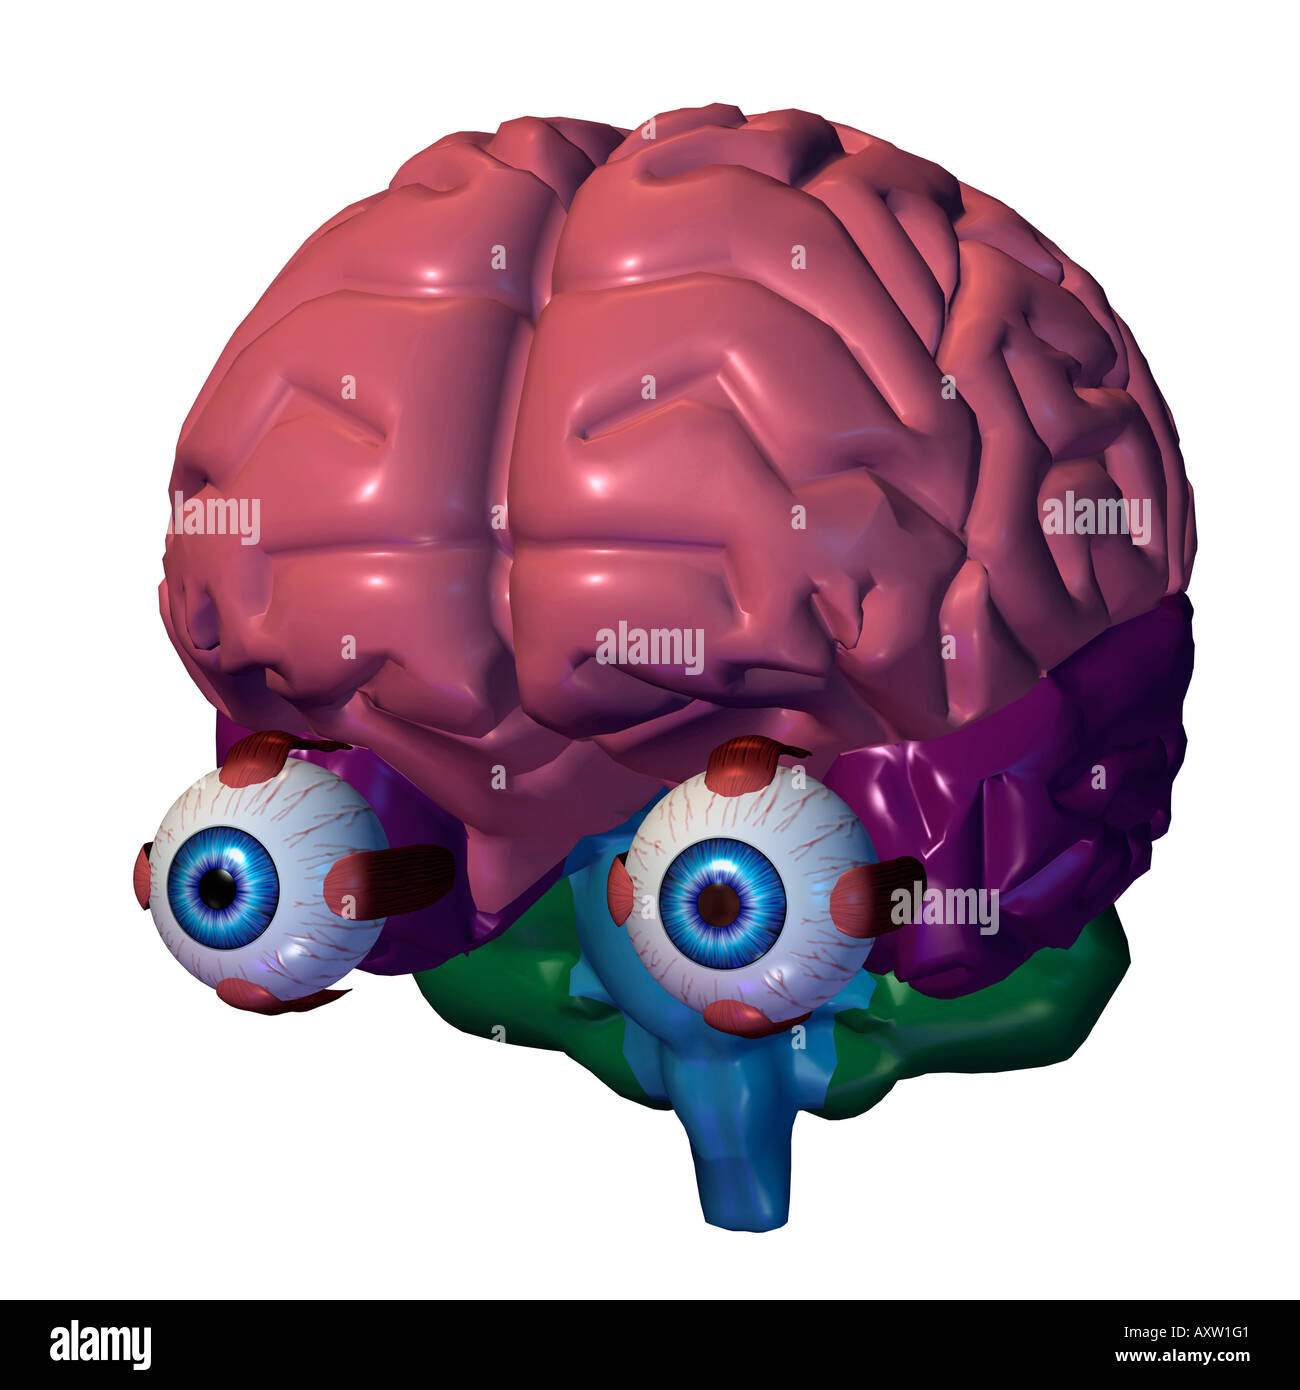 Close-up of a human brain with eye balls Stock Photo: 9668032 - Alamy